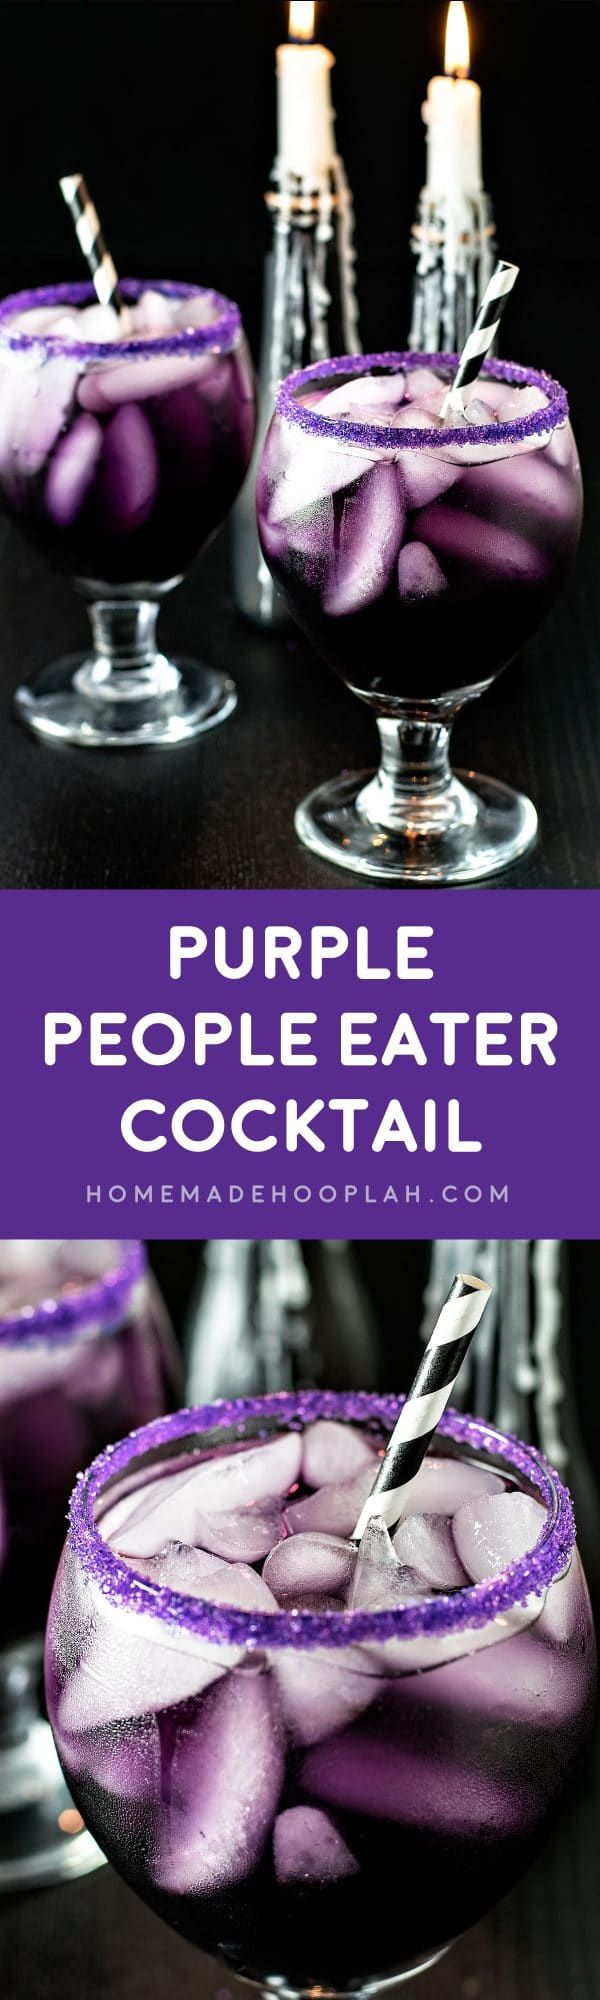 Purple People Eater Cocktail! A tasty (and creepy!) cocktail that get's it's purple hue from blue curacao, grenadine, and cranberry juice. A perfect cocktail for any type of party!   HomemadeHooplah.com